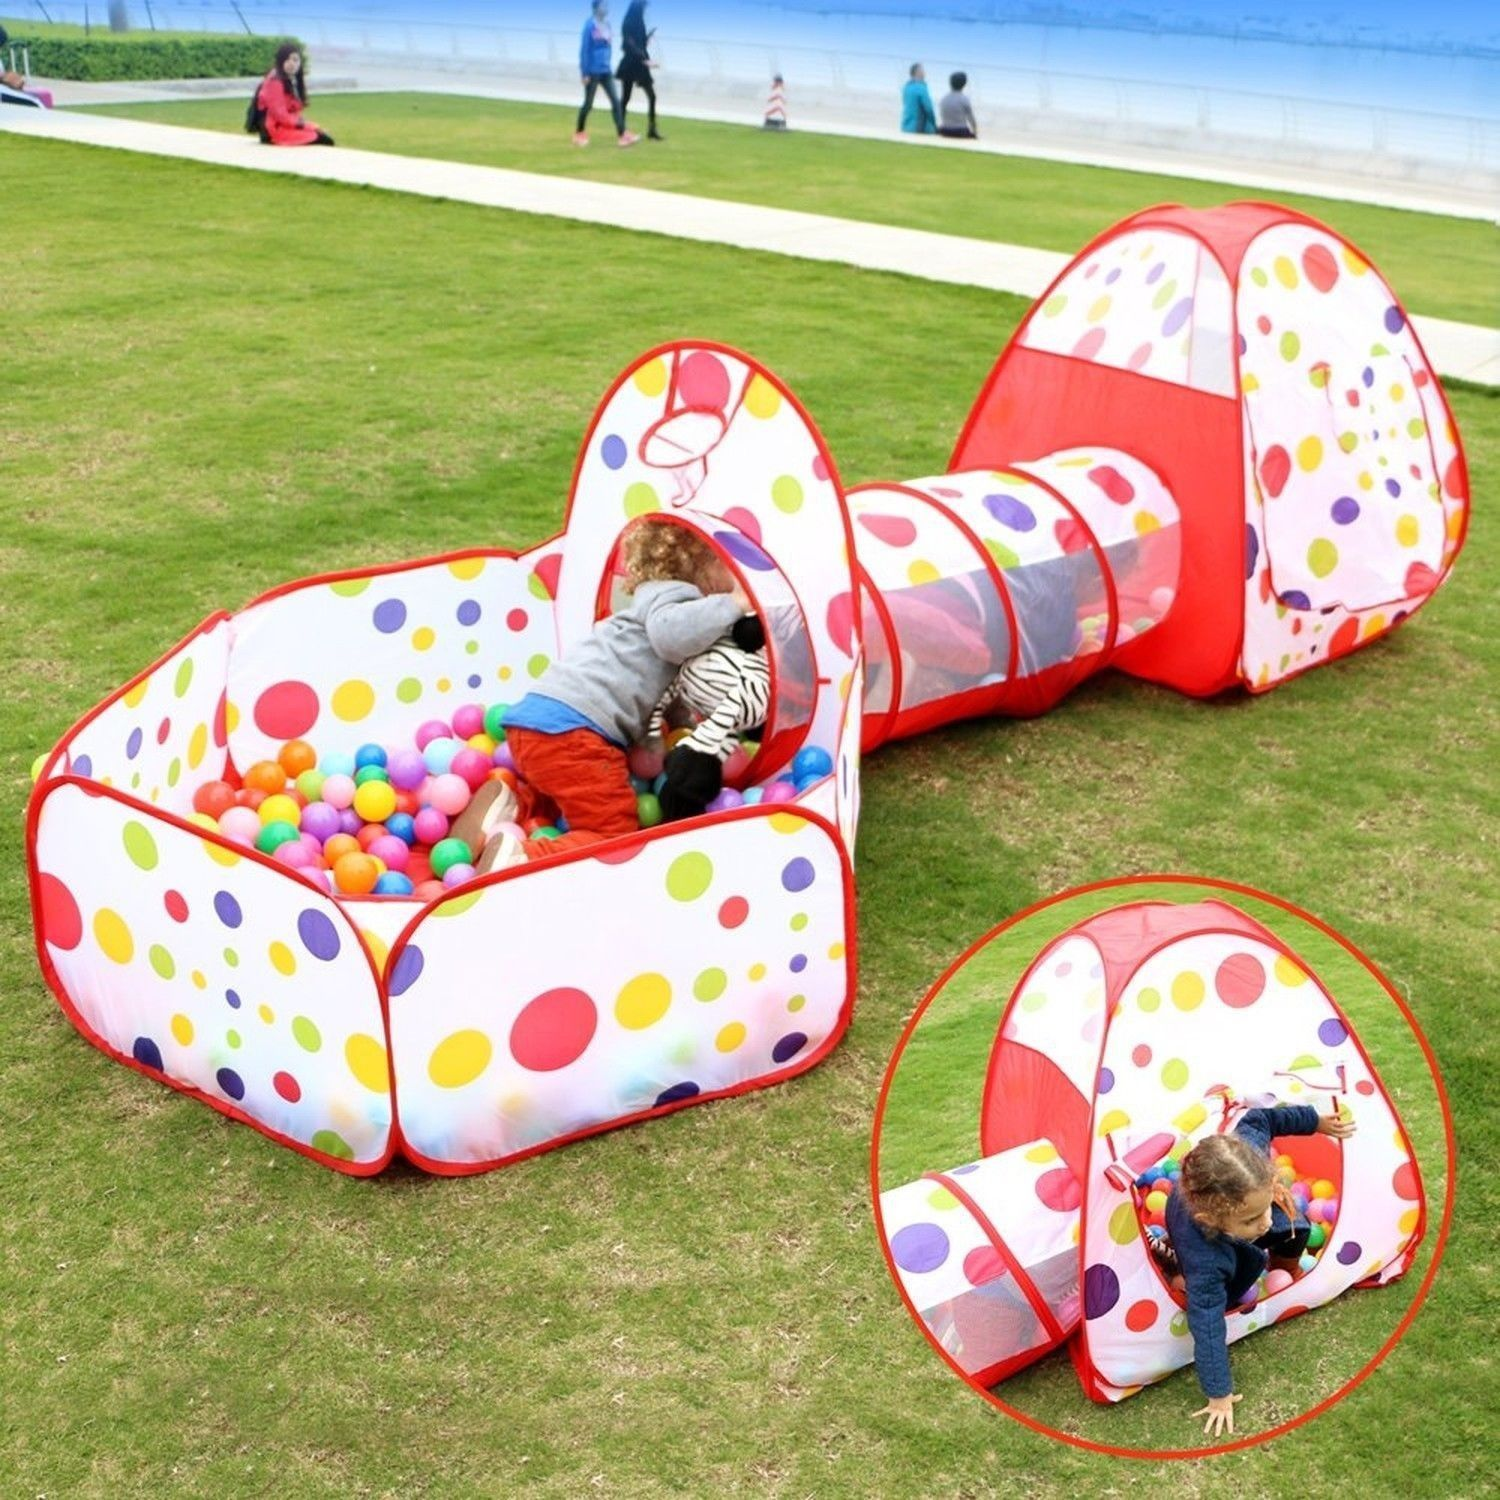 Eocusun Pop Up Kids Play Tent With Tunnel And Ball Pit Indoor And